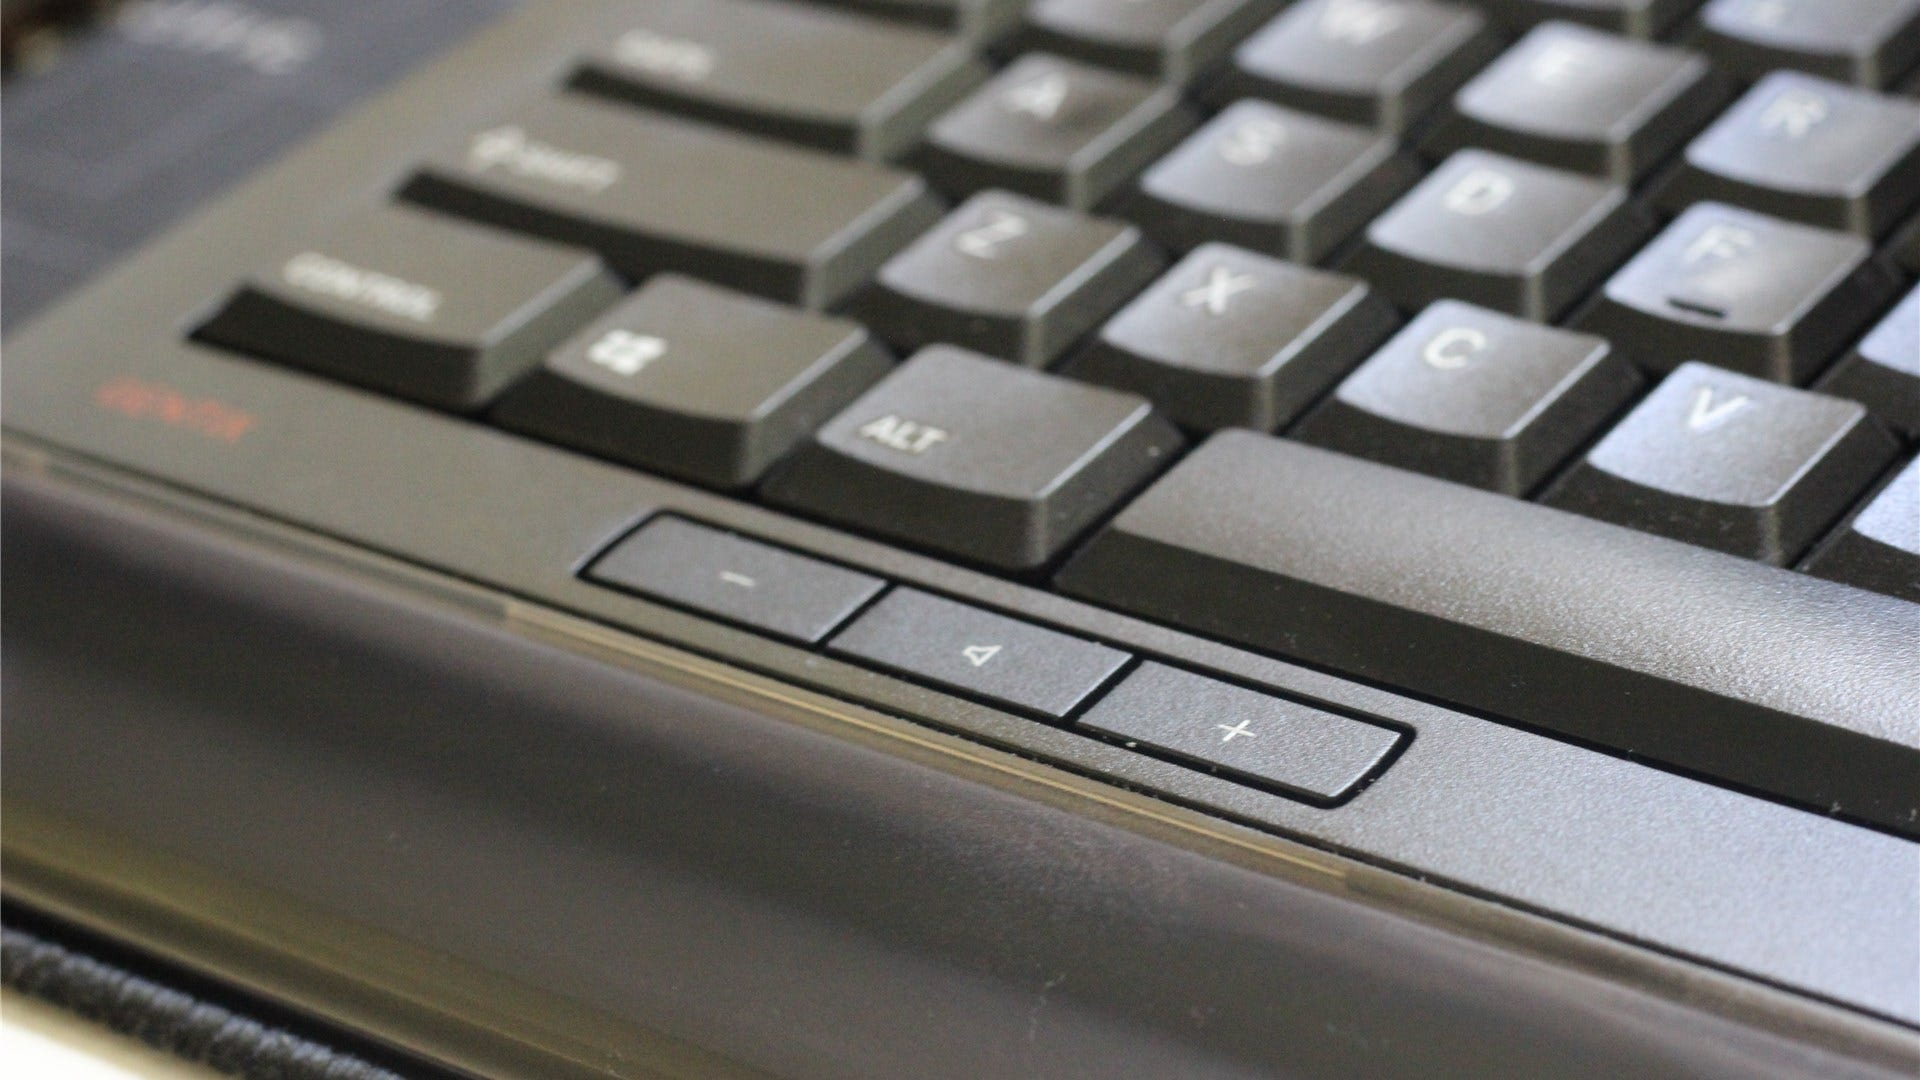 The volume control buttons on the Gentix keyboard